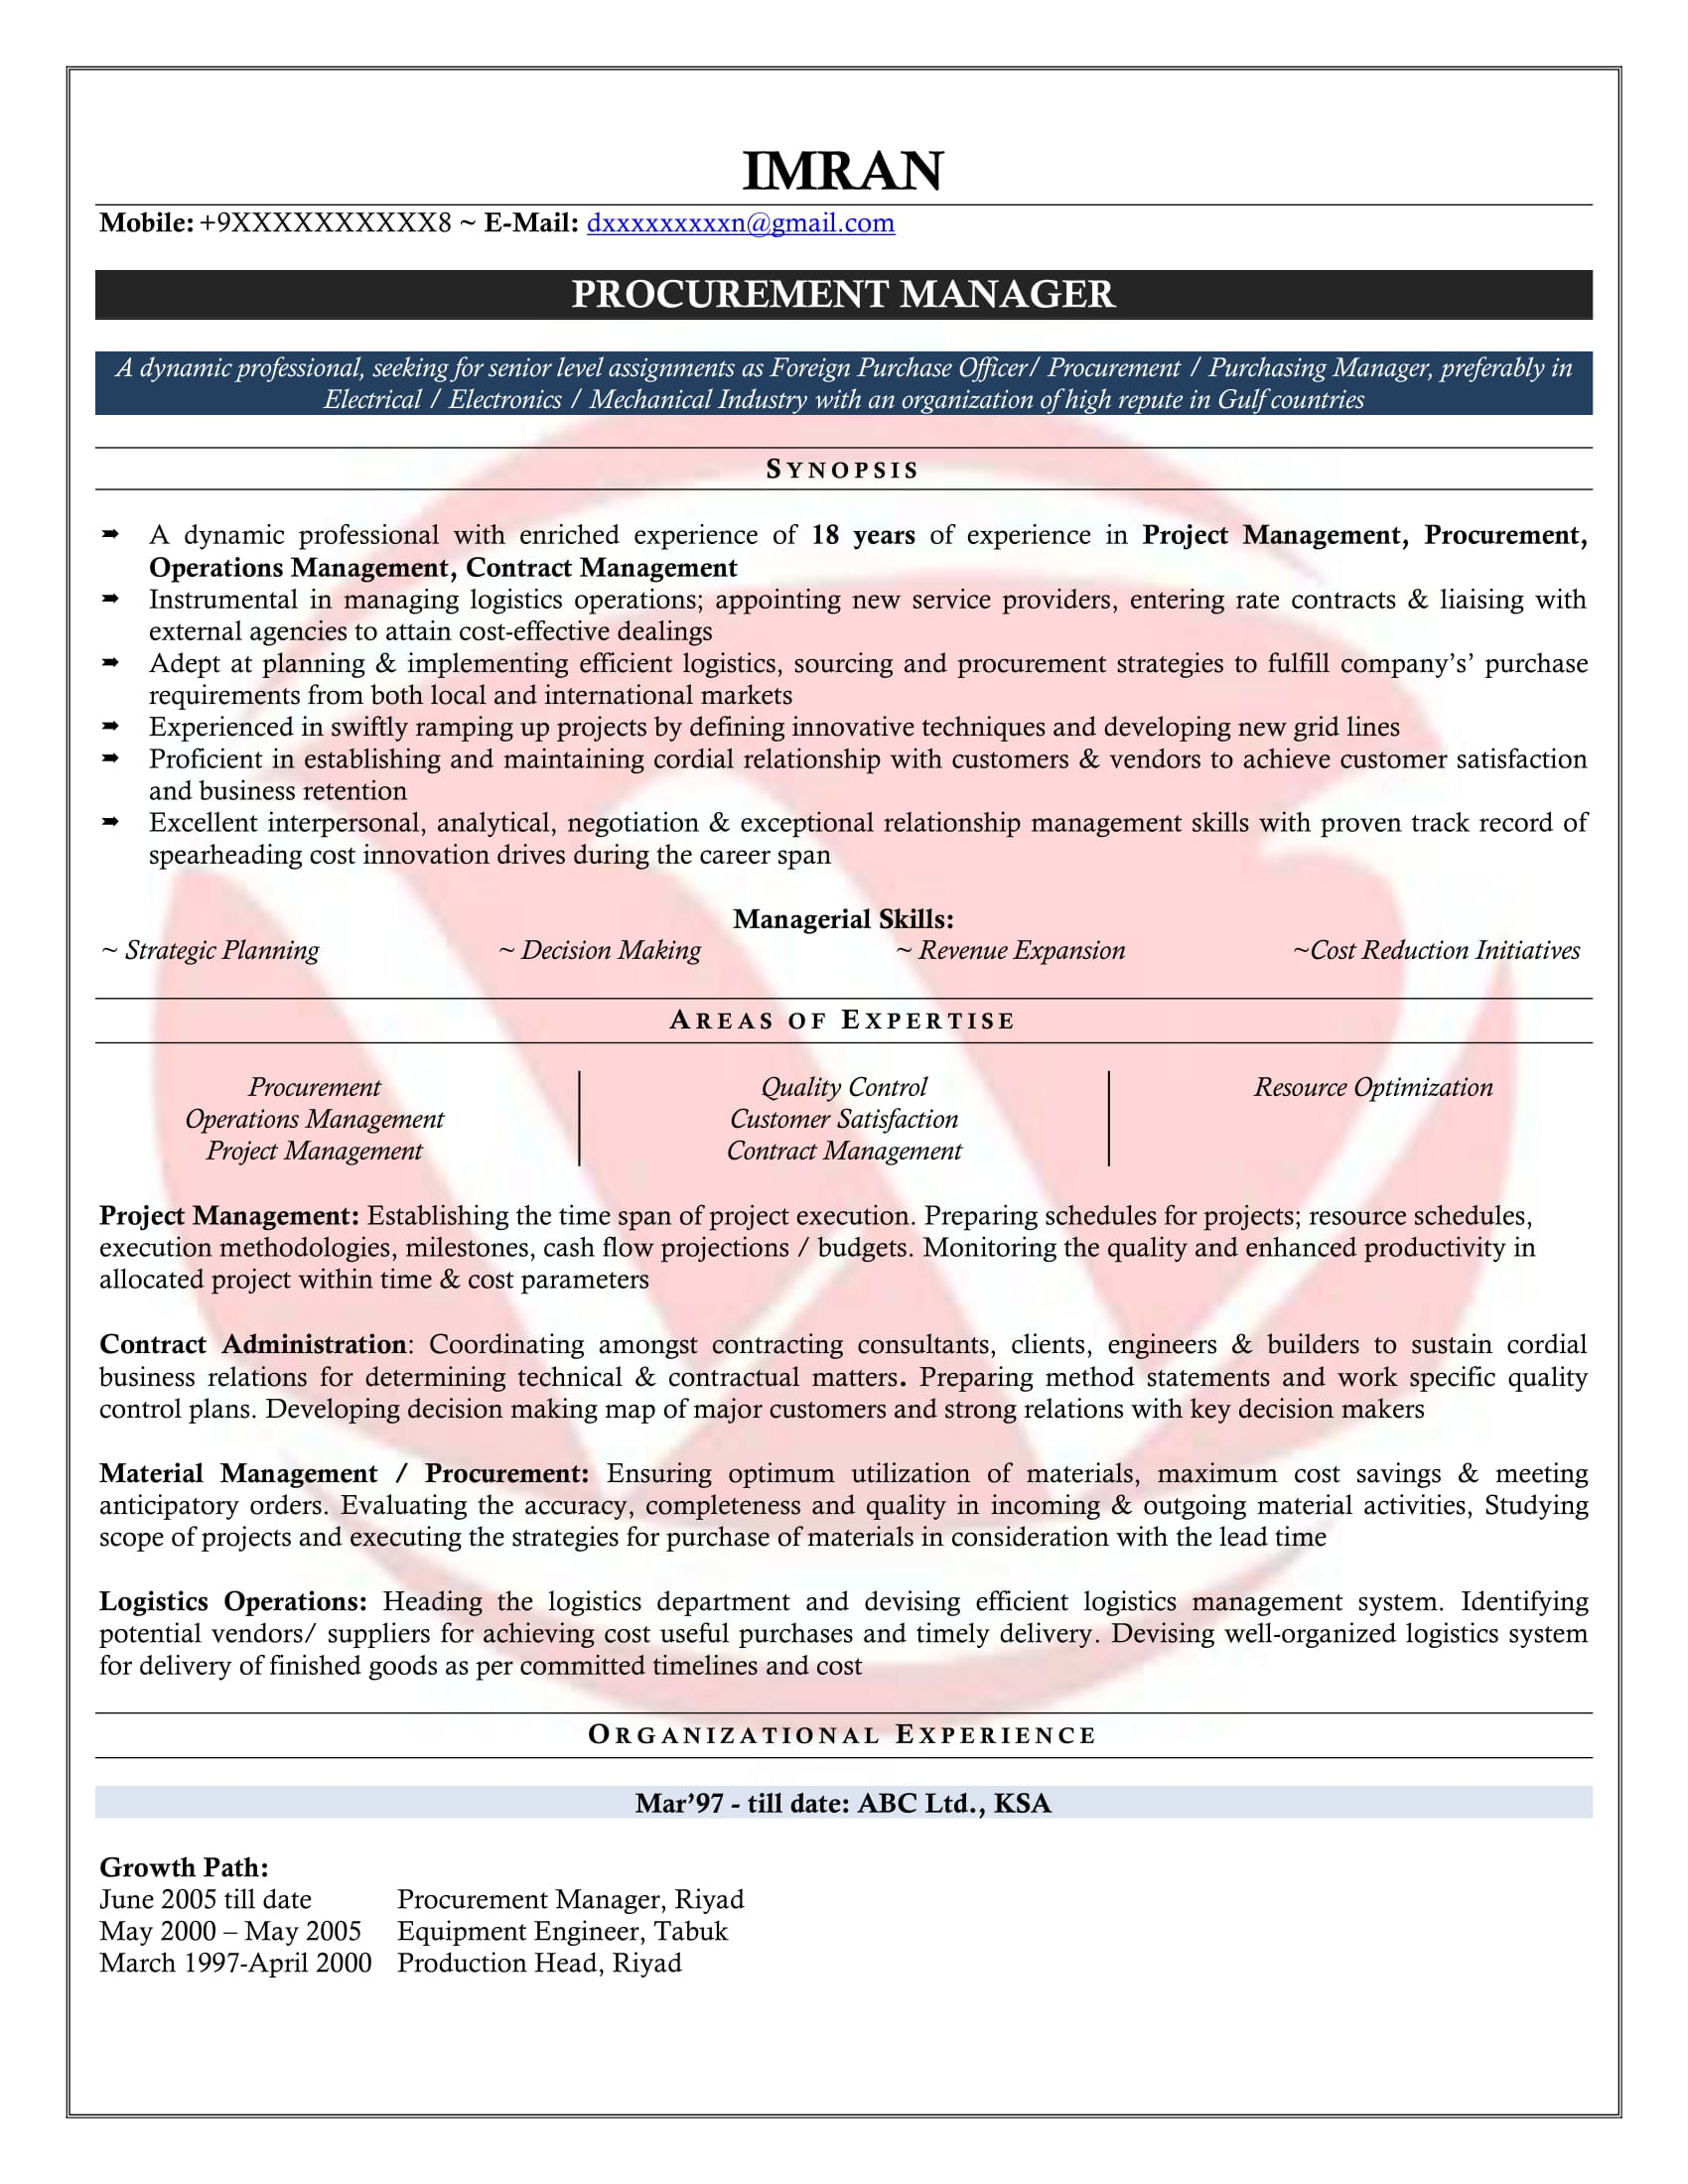 Sample Procurement Resume Purchase Manager Sample Resumes Download Resume Format